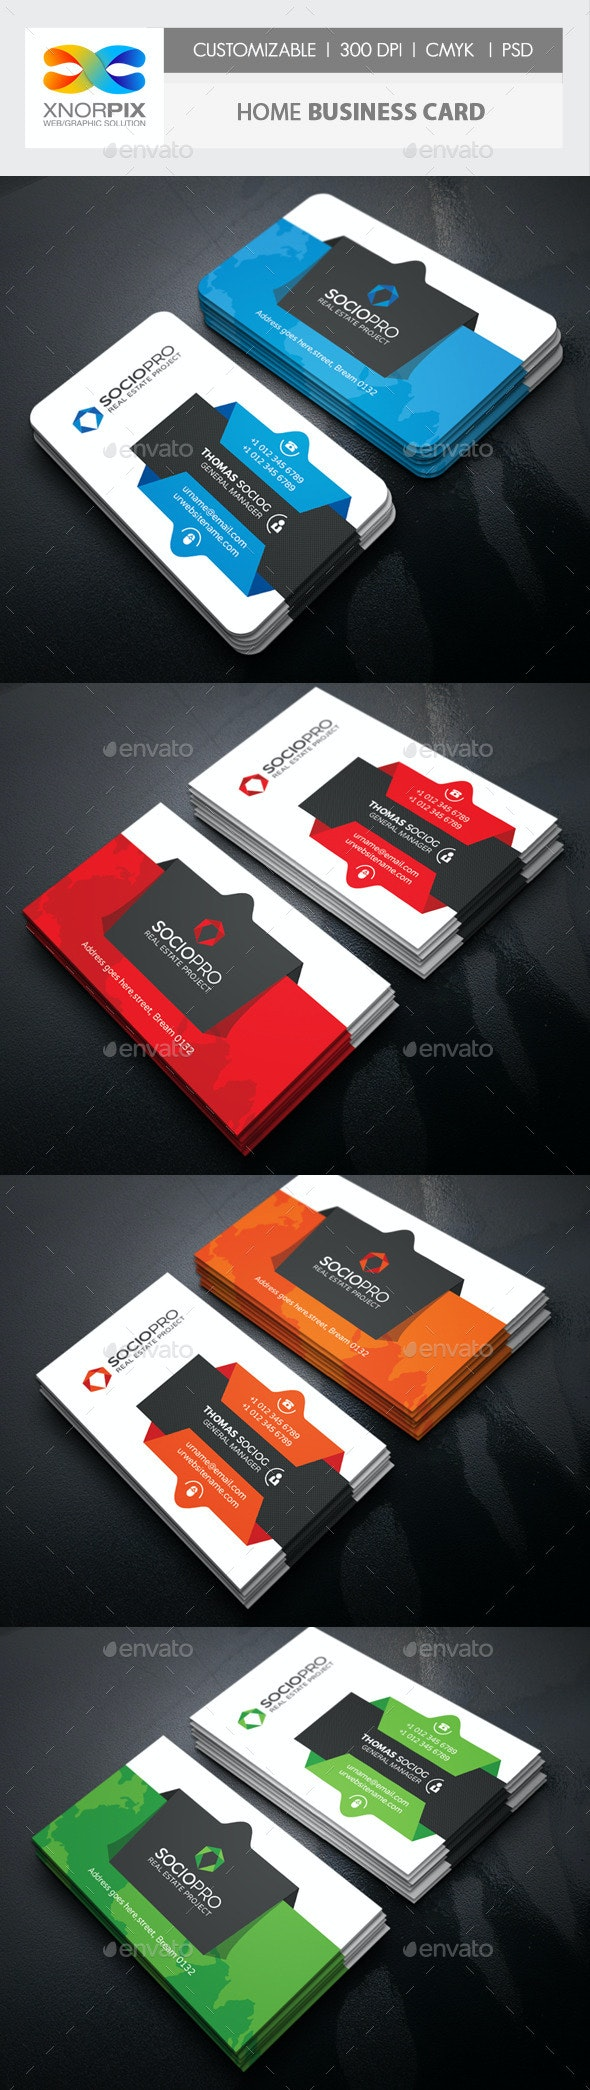 Home Business Card - Corporate Business Cards